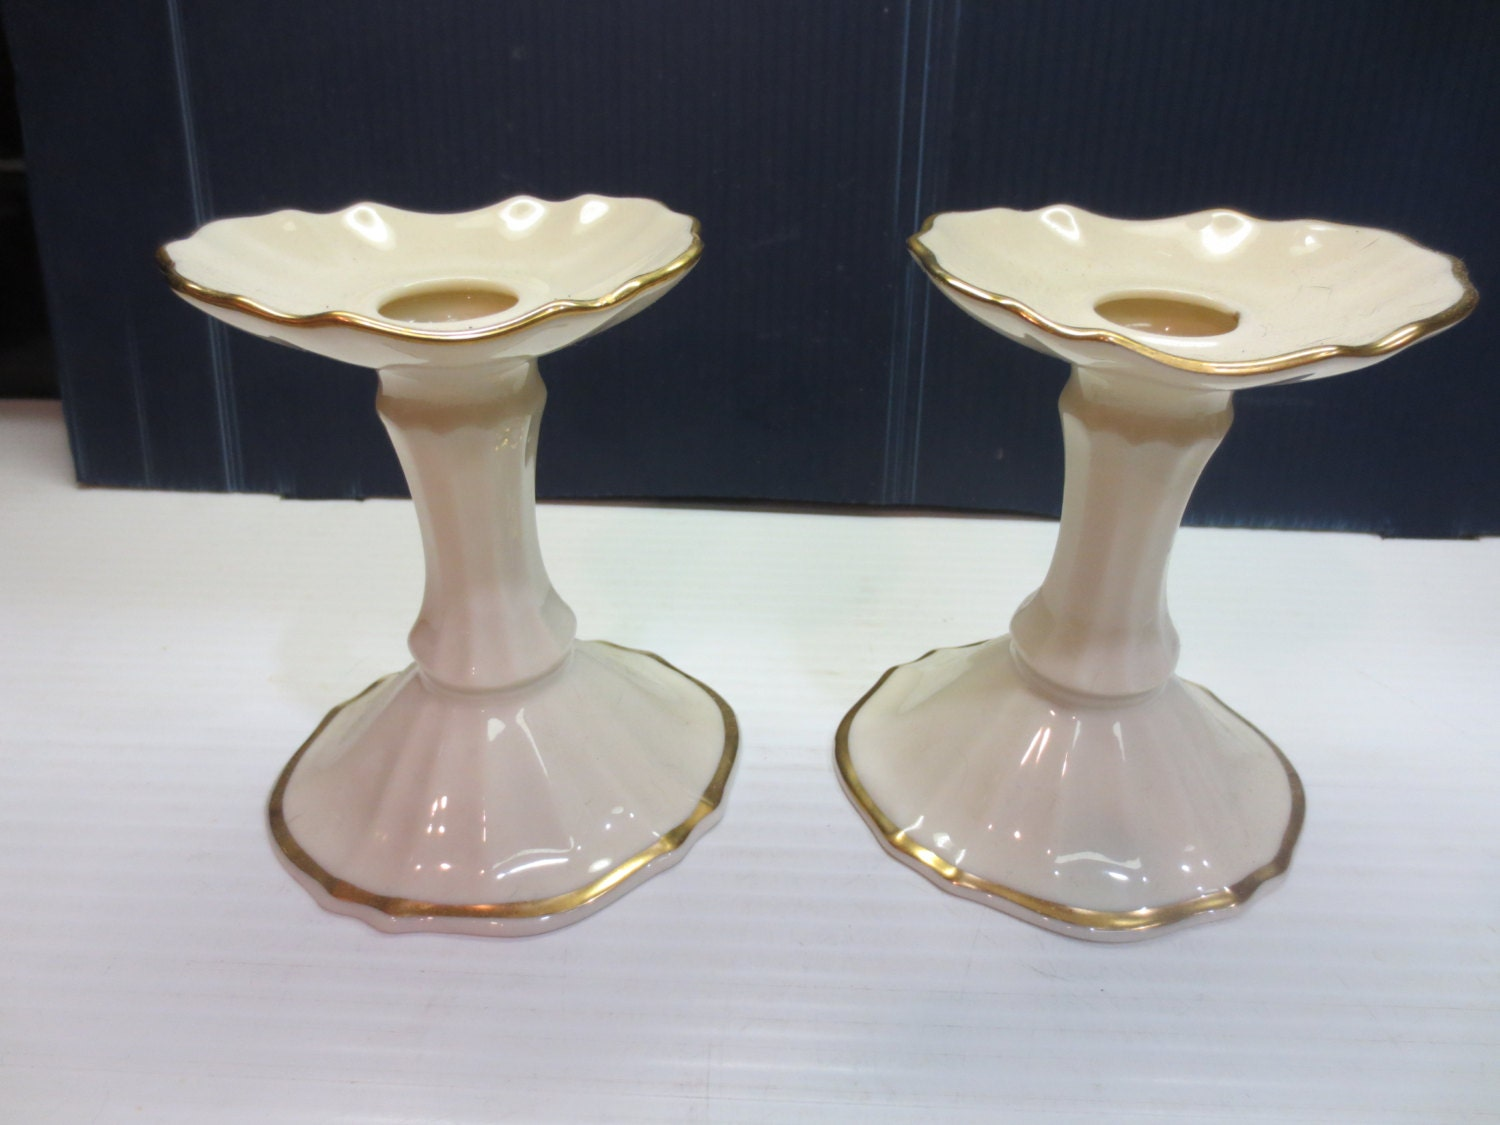 Lenox candlestick holders hand painted with